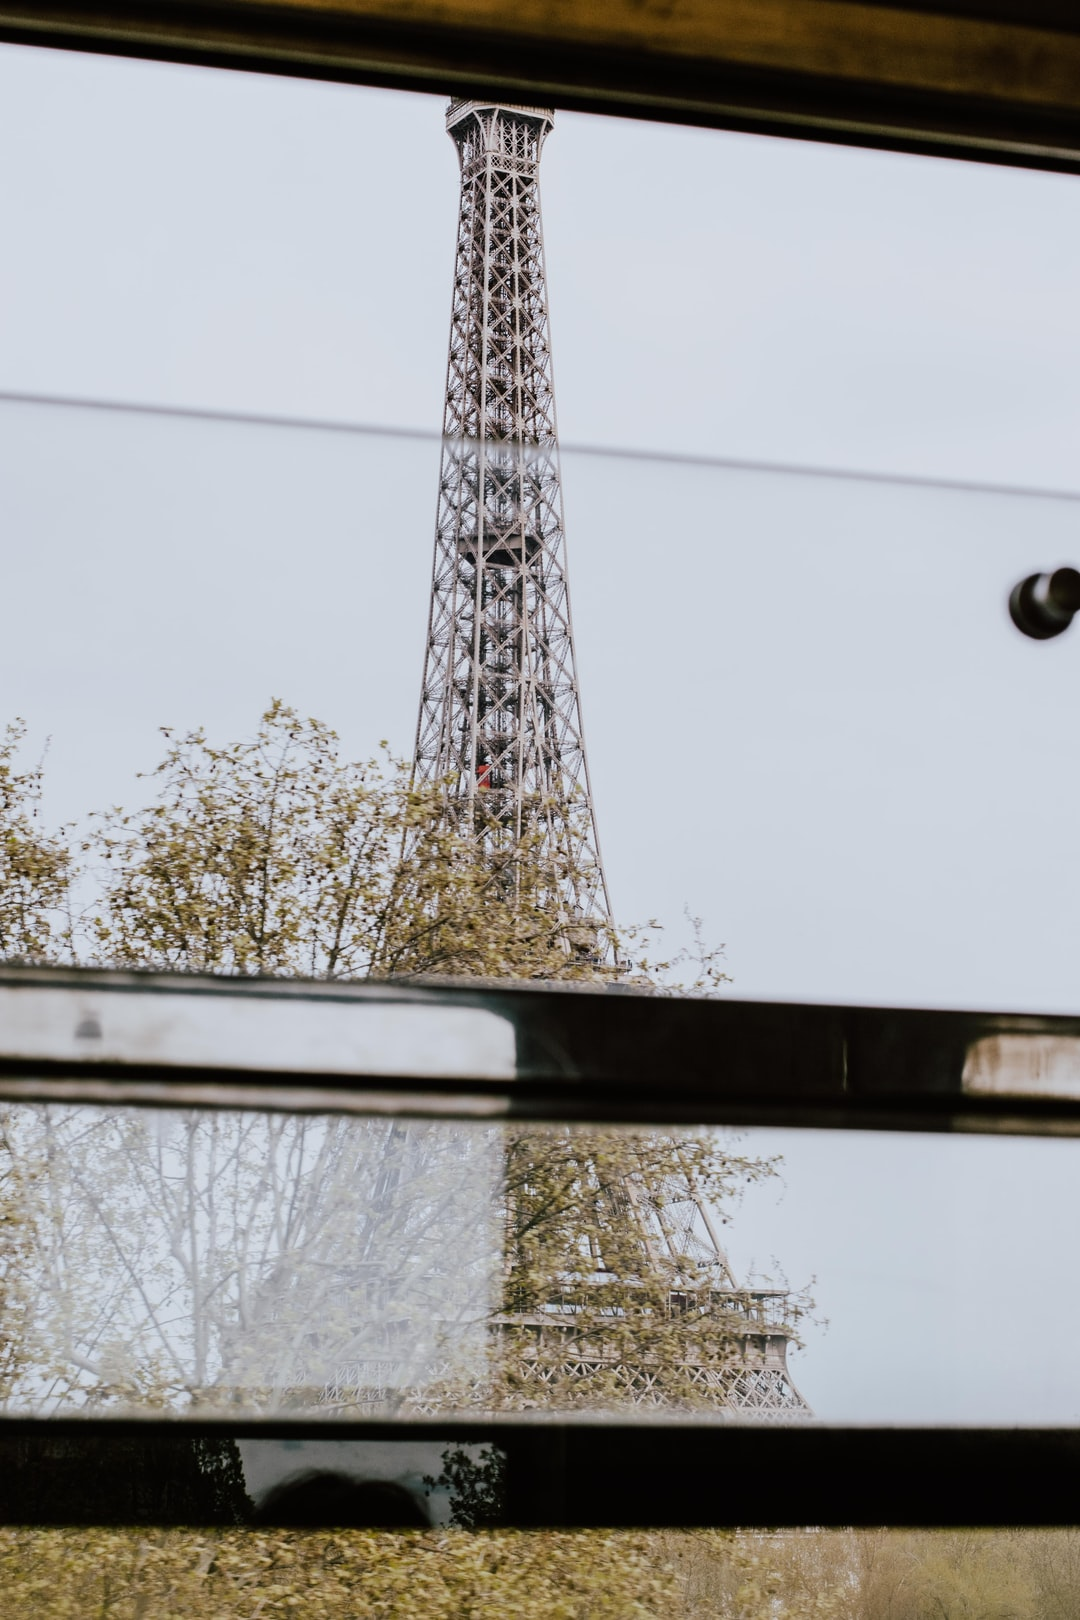 Eifel tower from the RER view